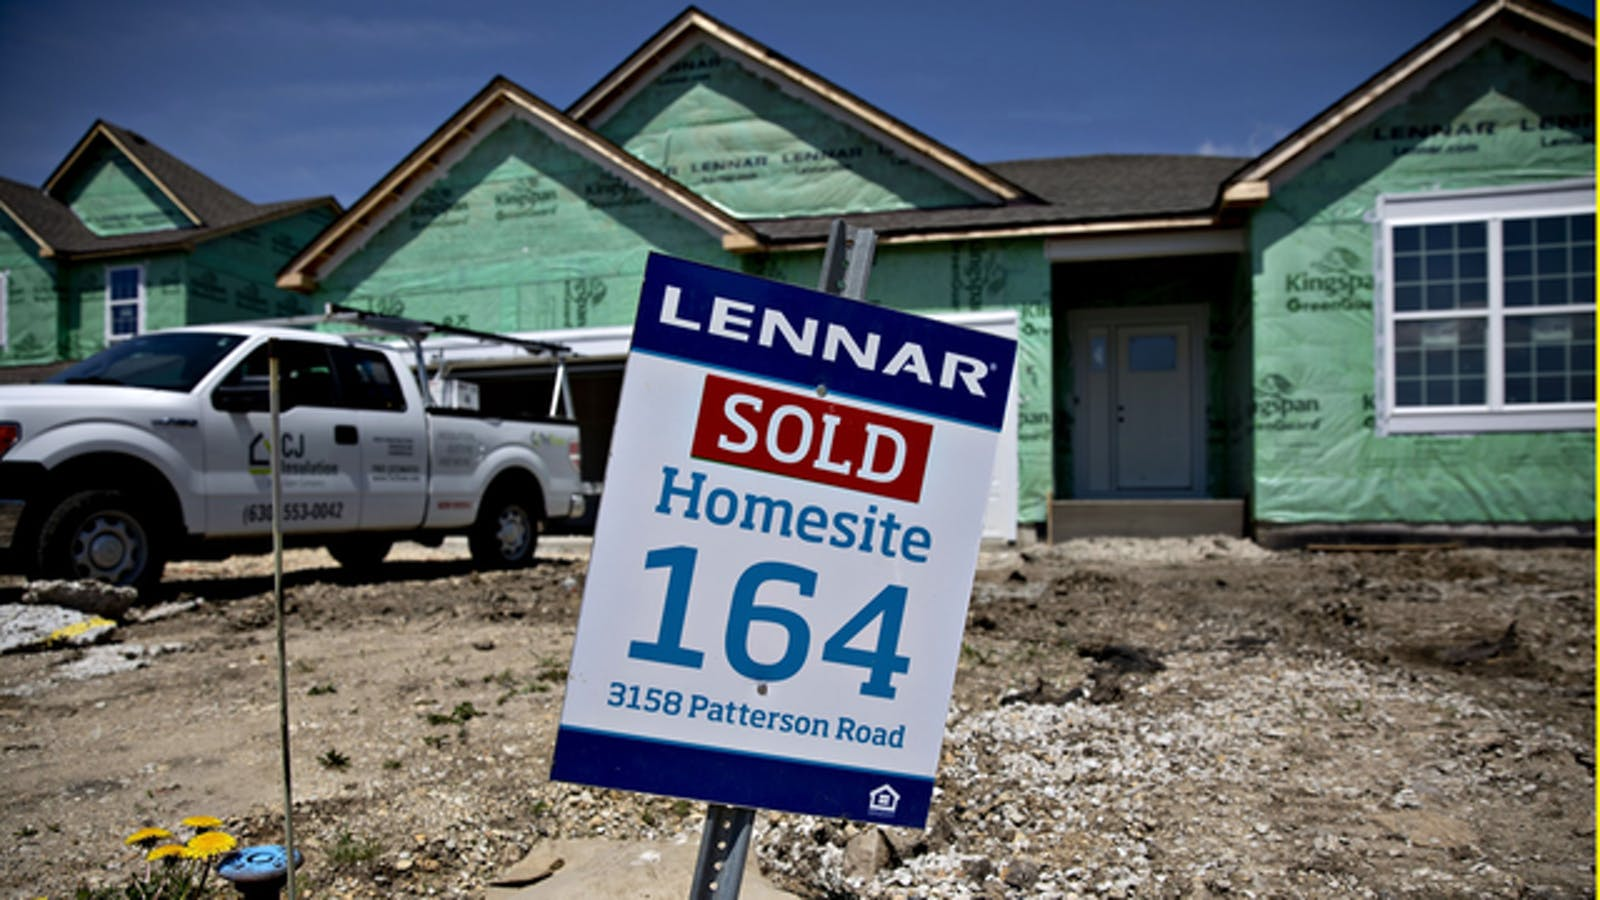 A 'Sold' sign is displayed outside a home under construction at a Lennar development site. Photo by Bloomberg